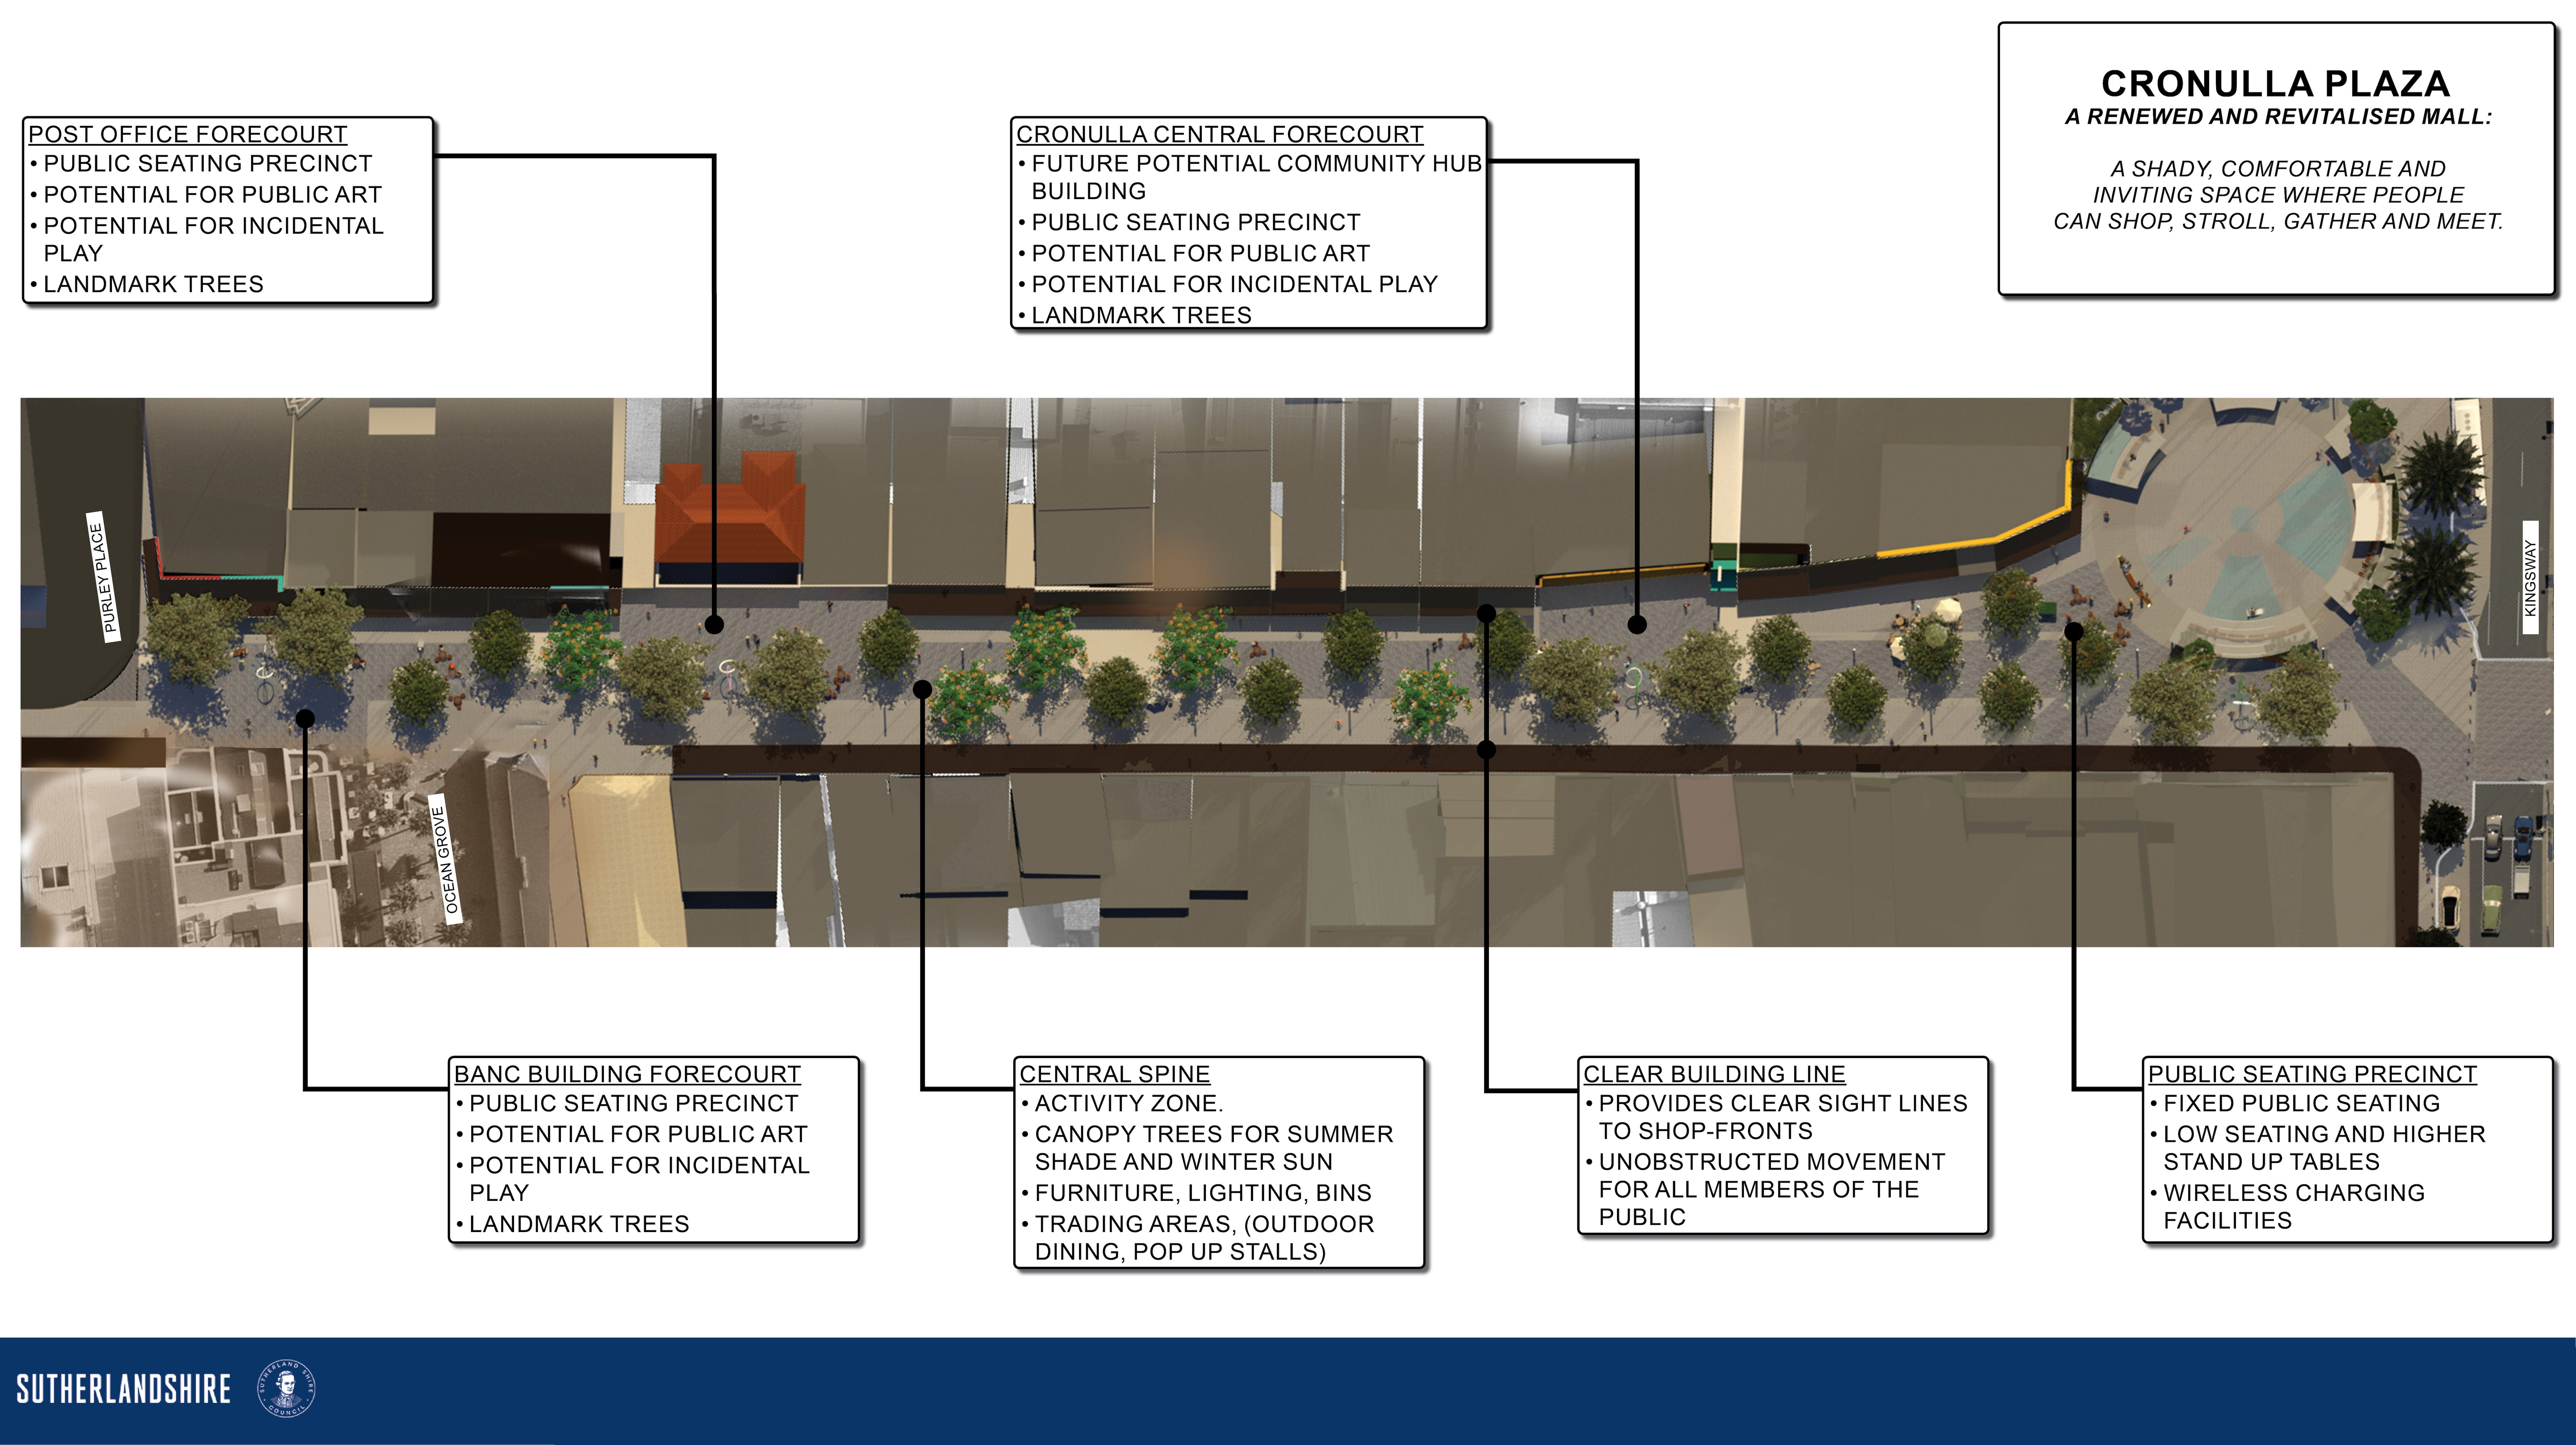 CRONULLA PLAZA DRAFT LAYOUT PLAN